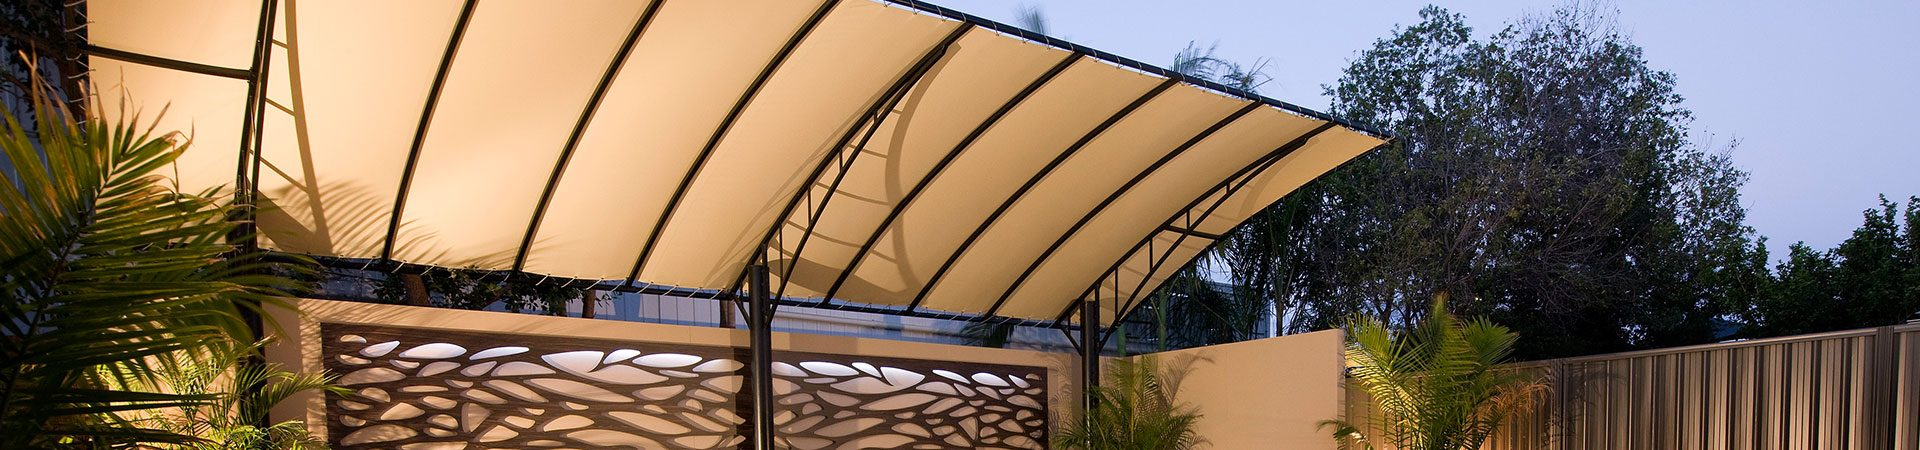 Cantilever canvas vogue pergola